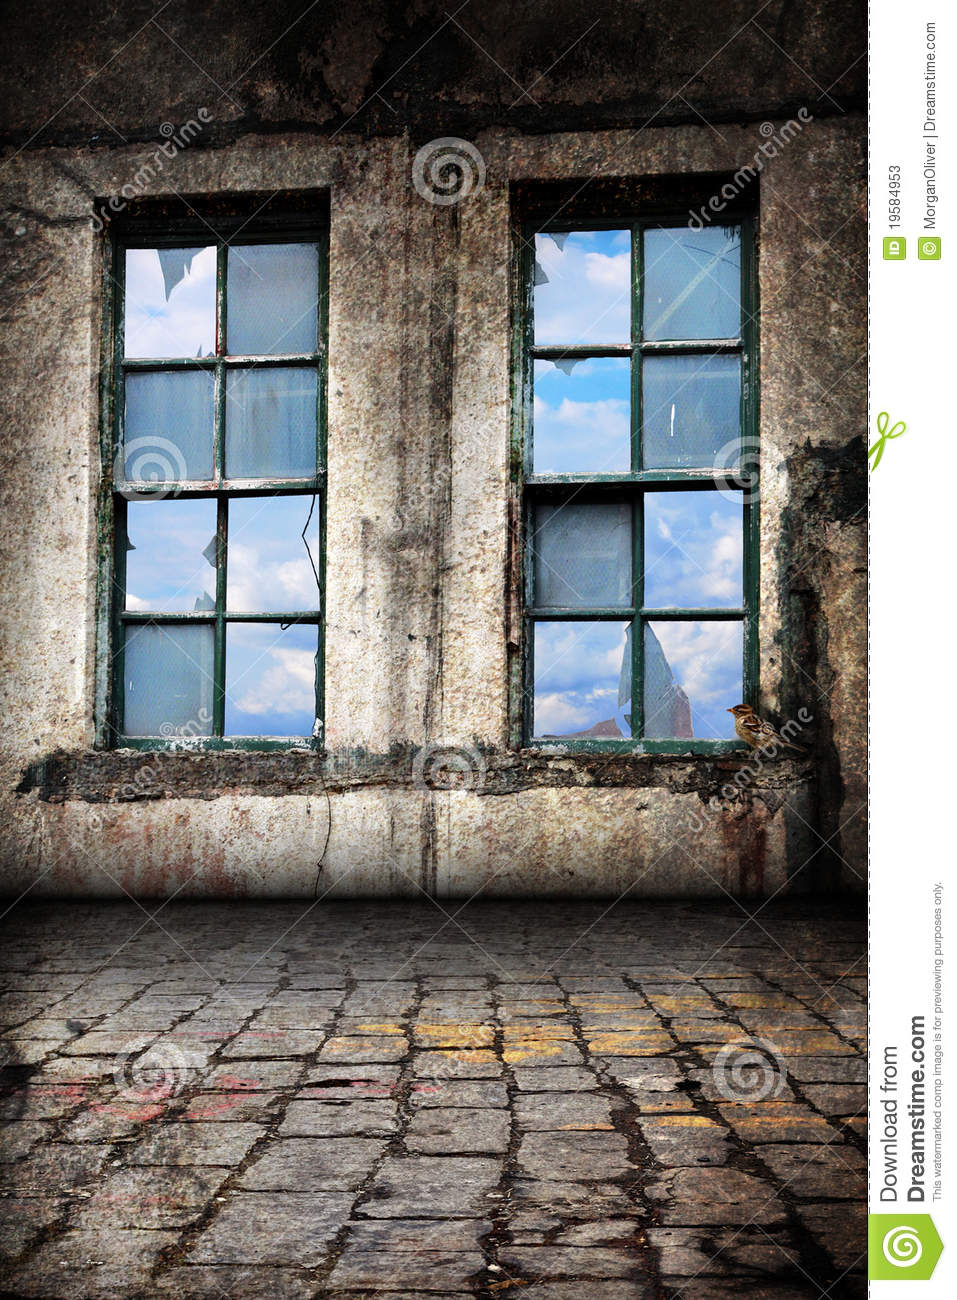 Old Interior Window Walls : Interior of old warehouse background stock photos image